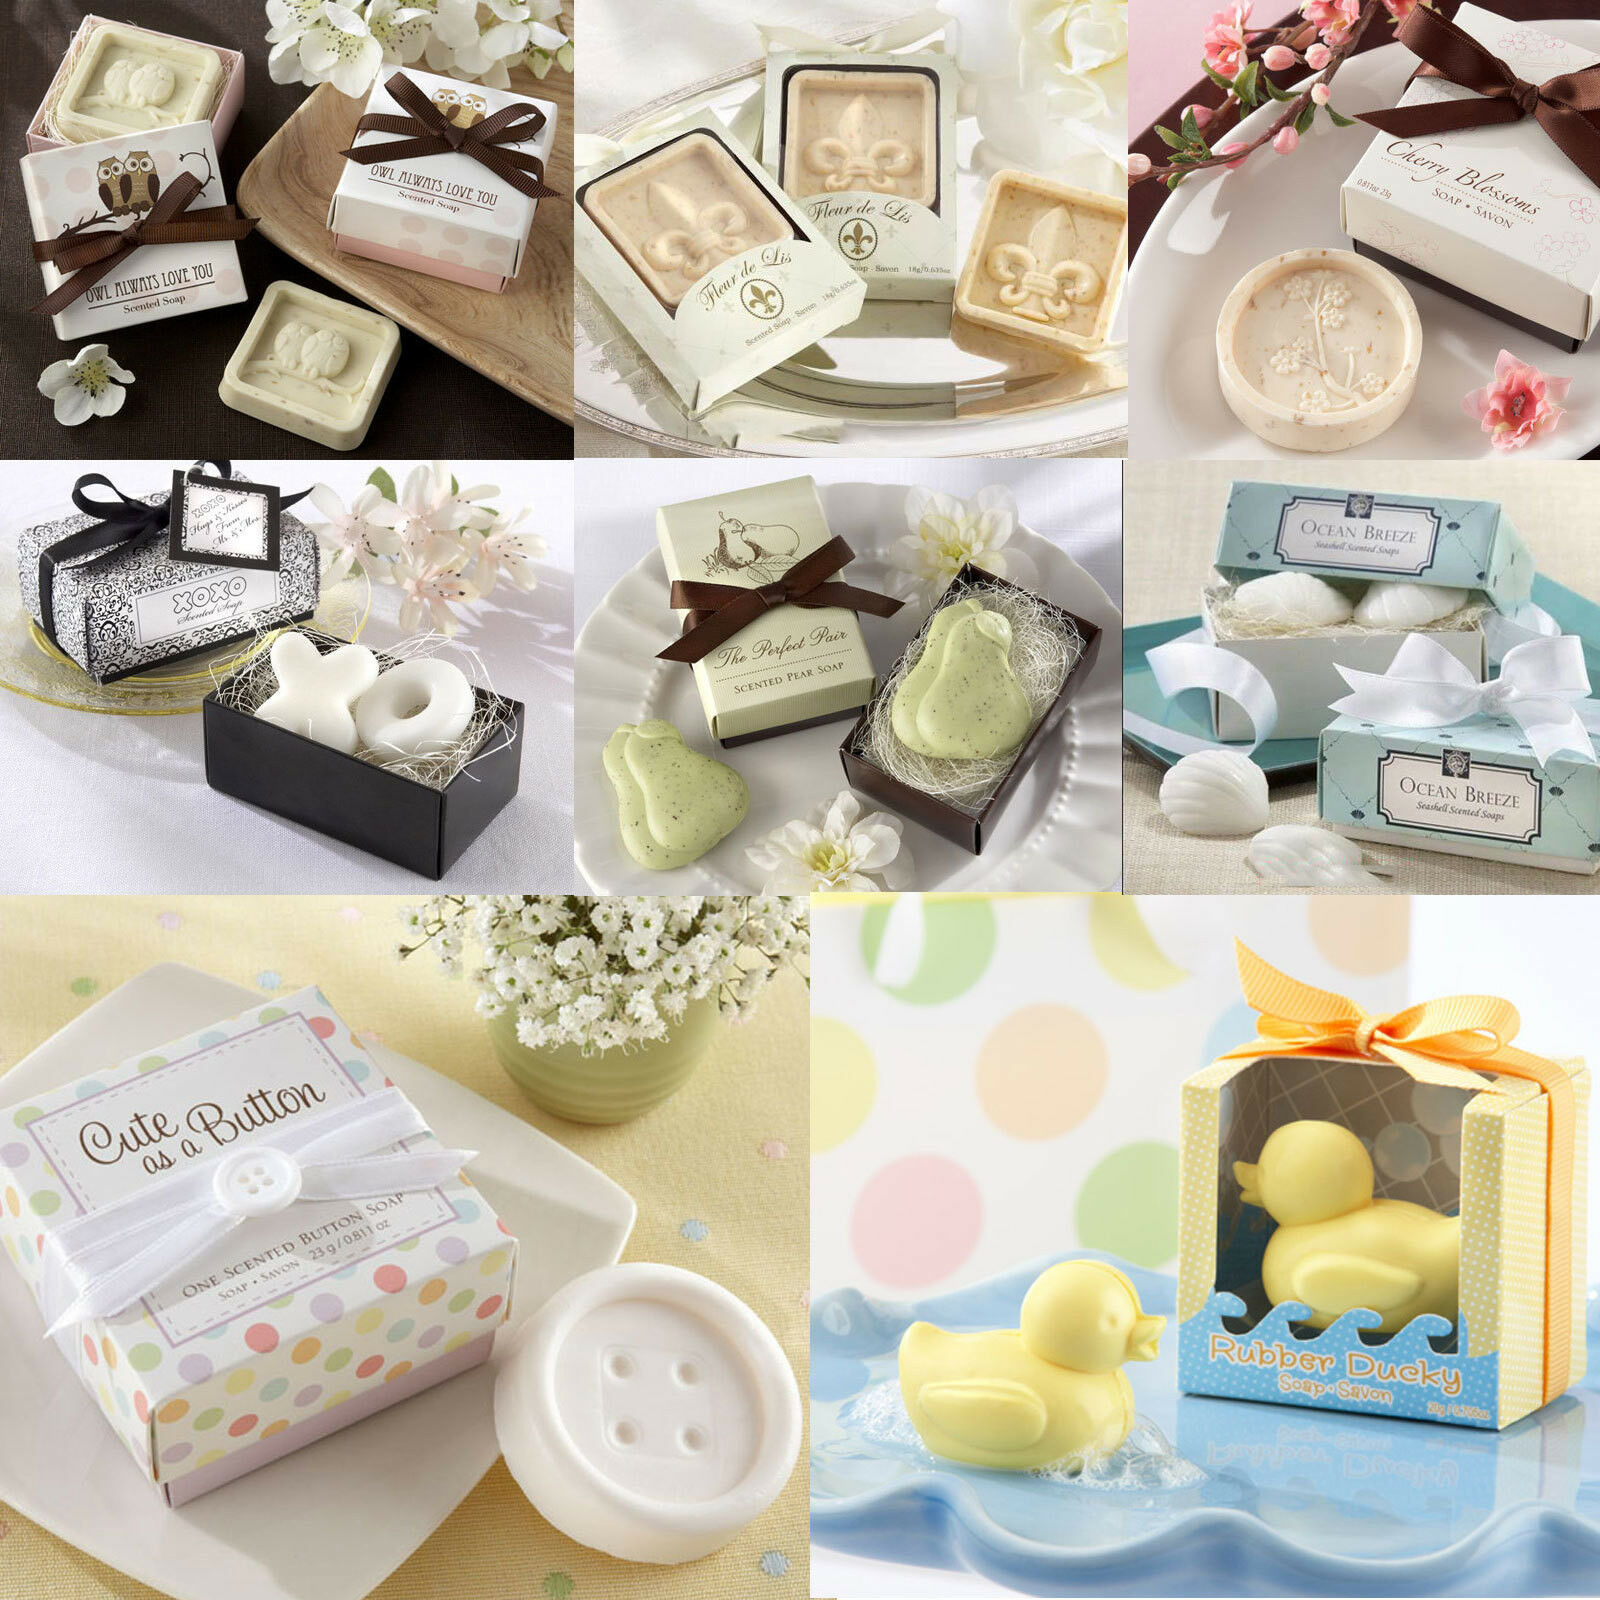 Small Gift For Wedding: Creative Cute Gift Handmade Small Bath Soap Wedding Favors